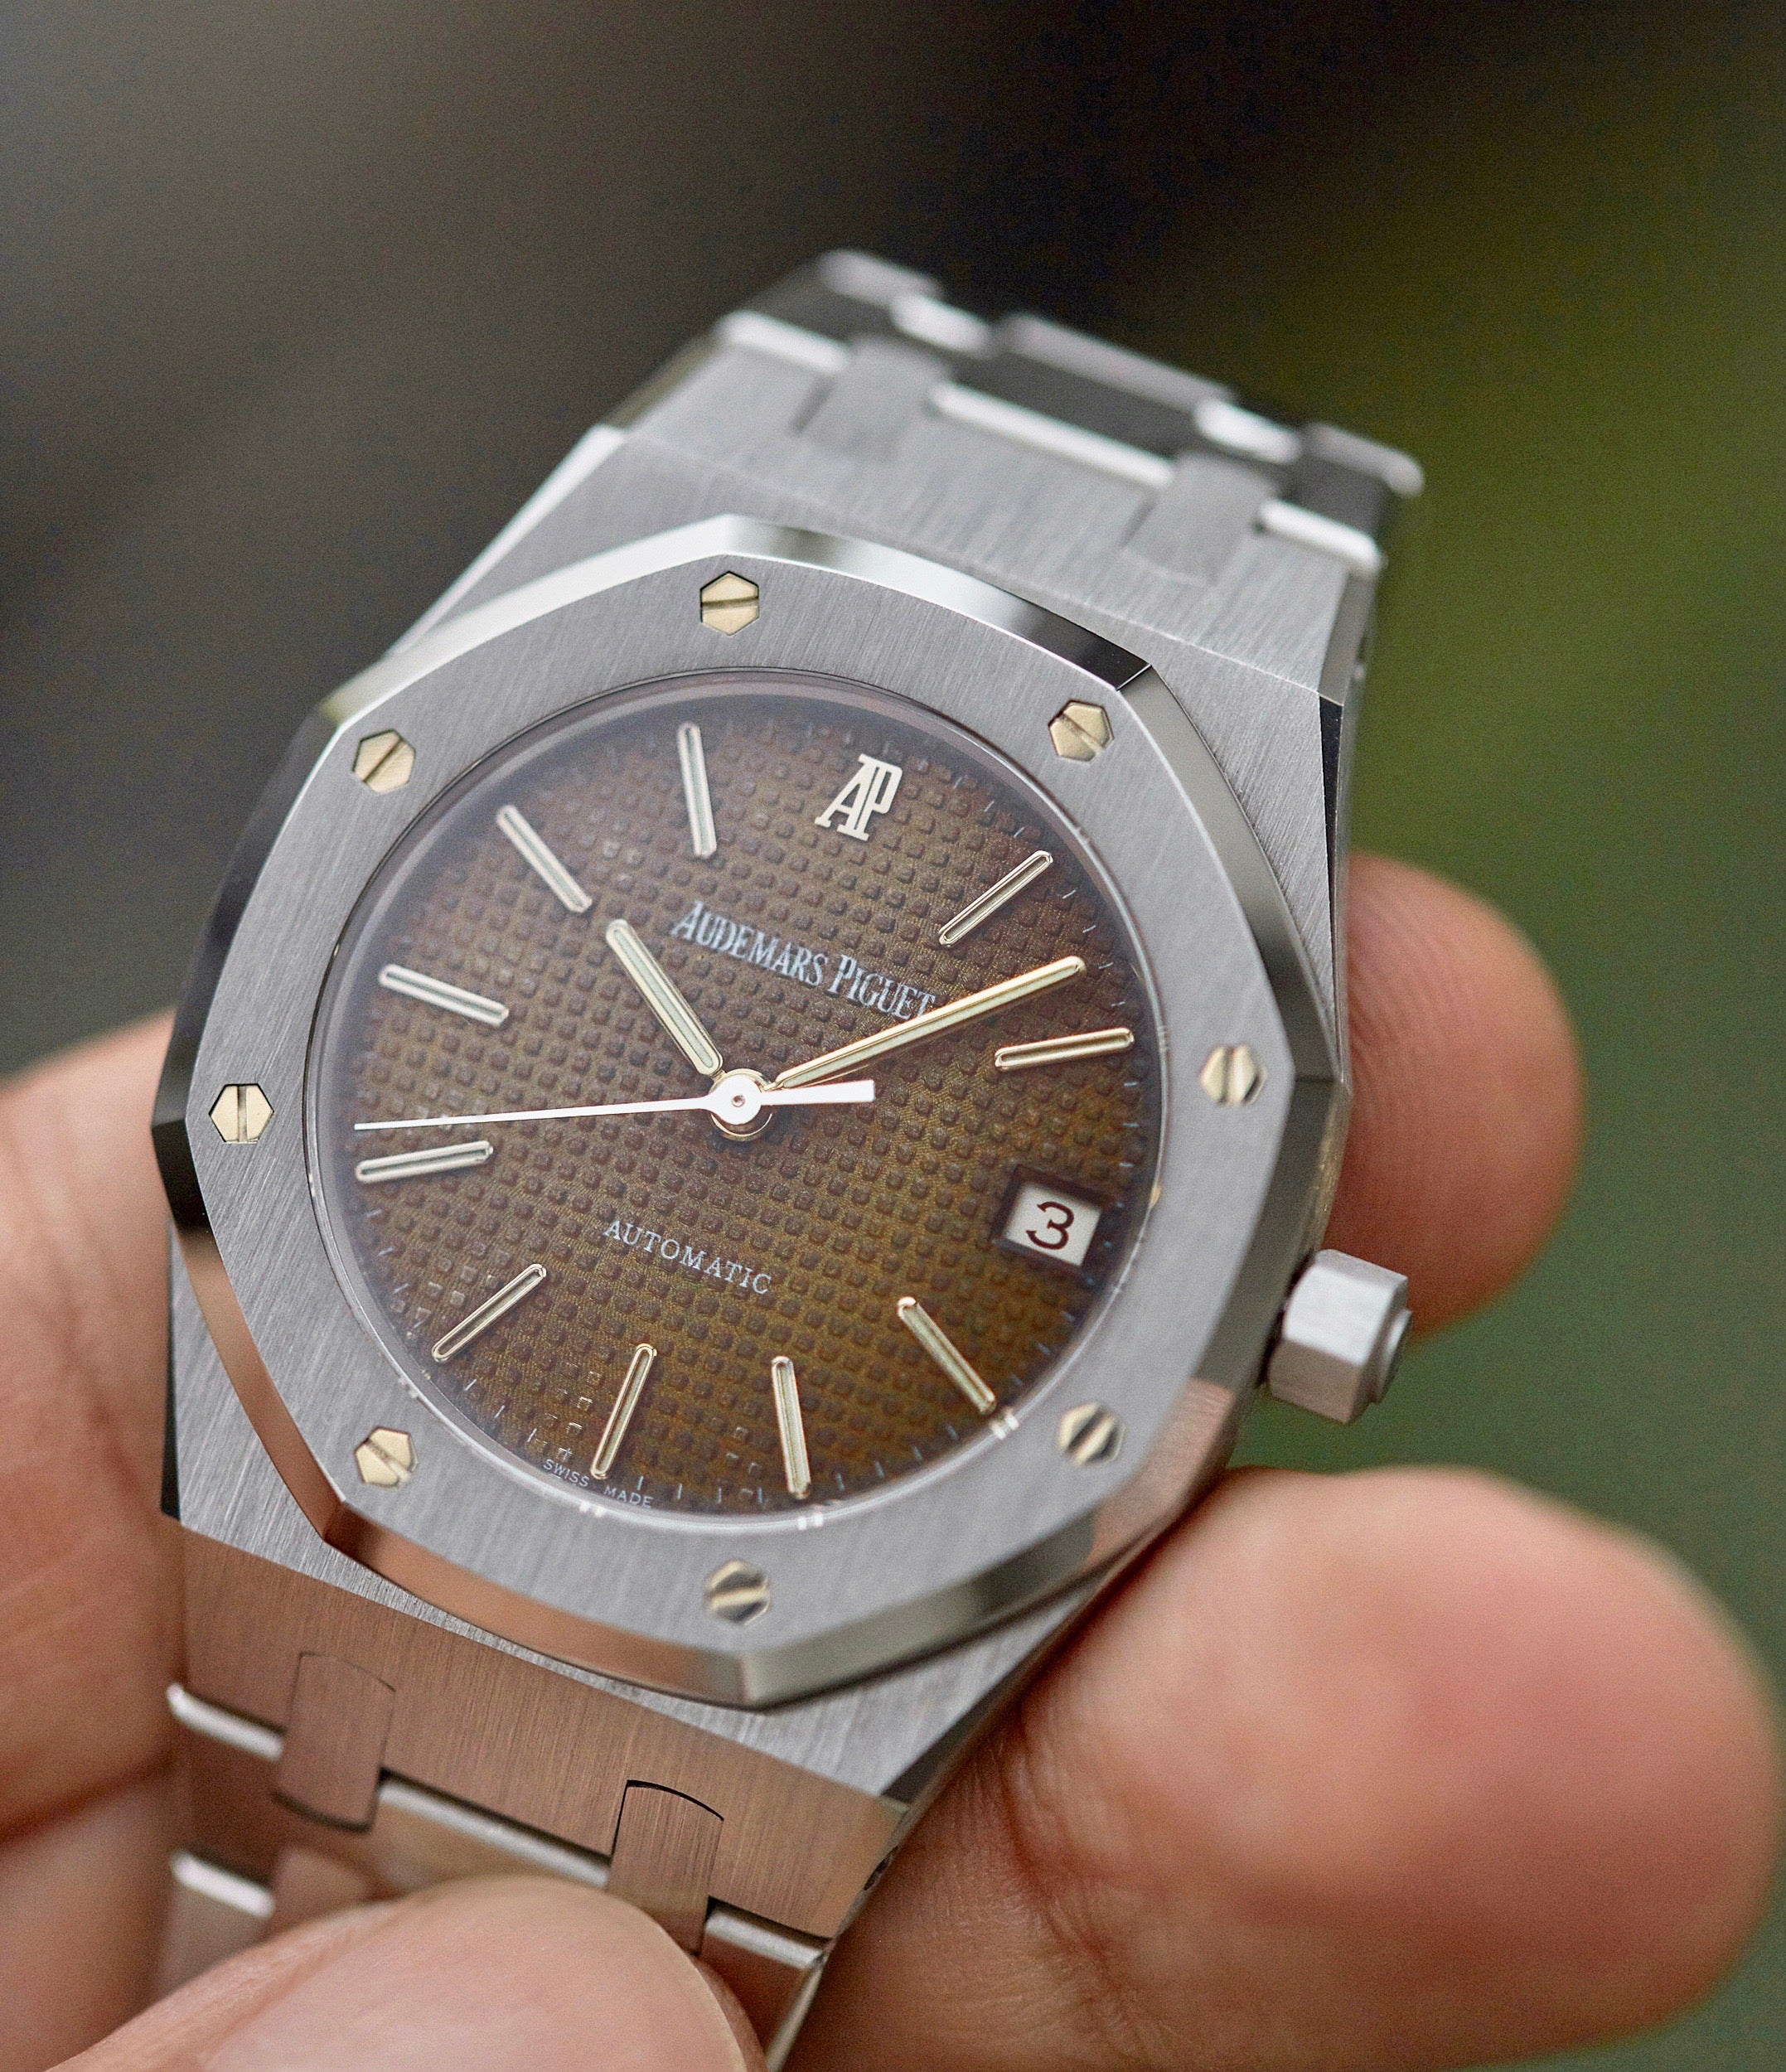 Audemars Piguet Royal Oak 14790 mid-sized second series in stainless steel with a rare tropical dial for A Collected Man London